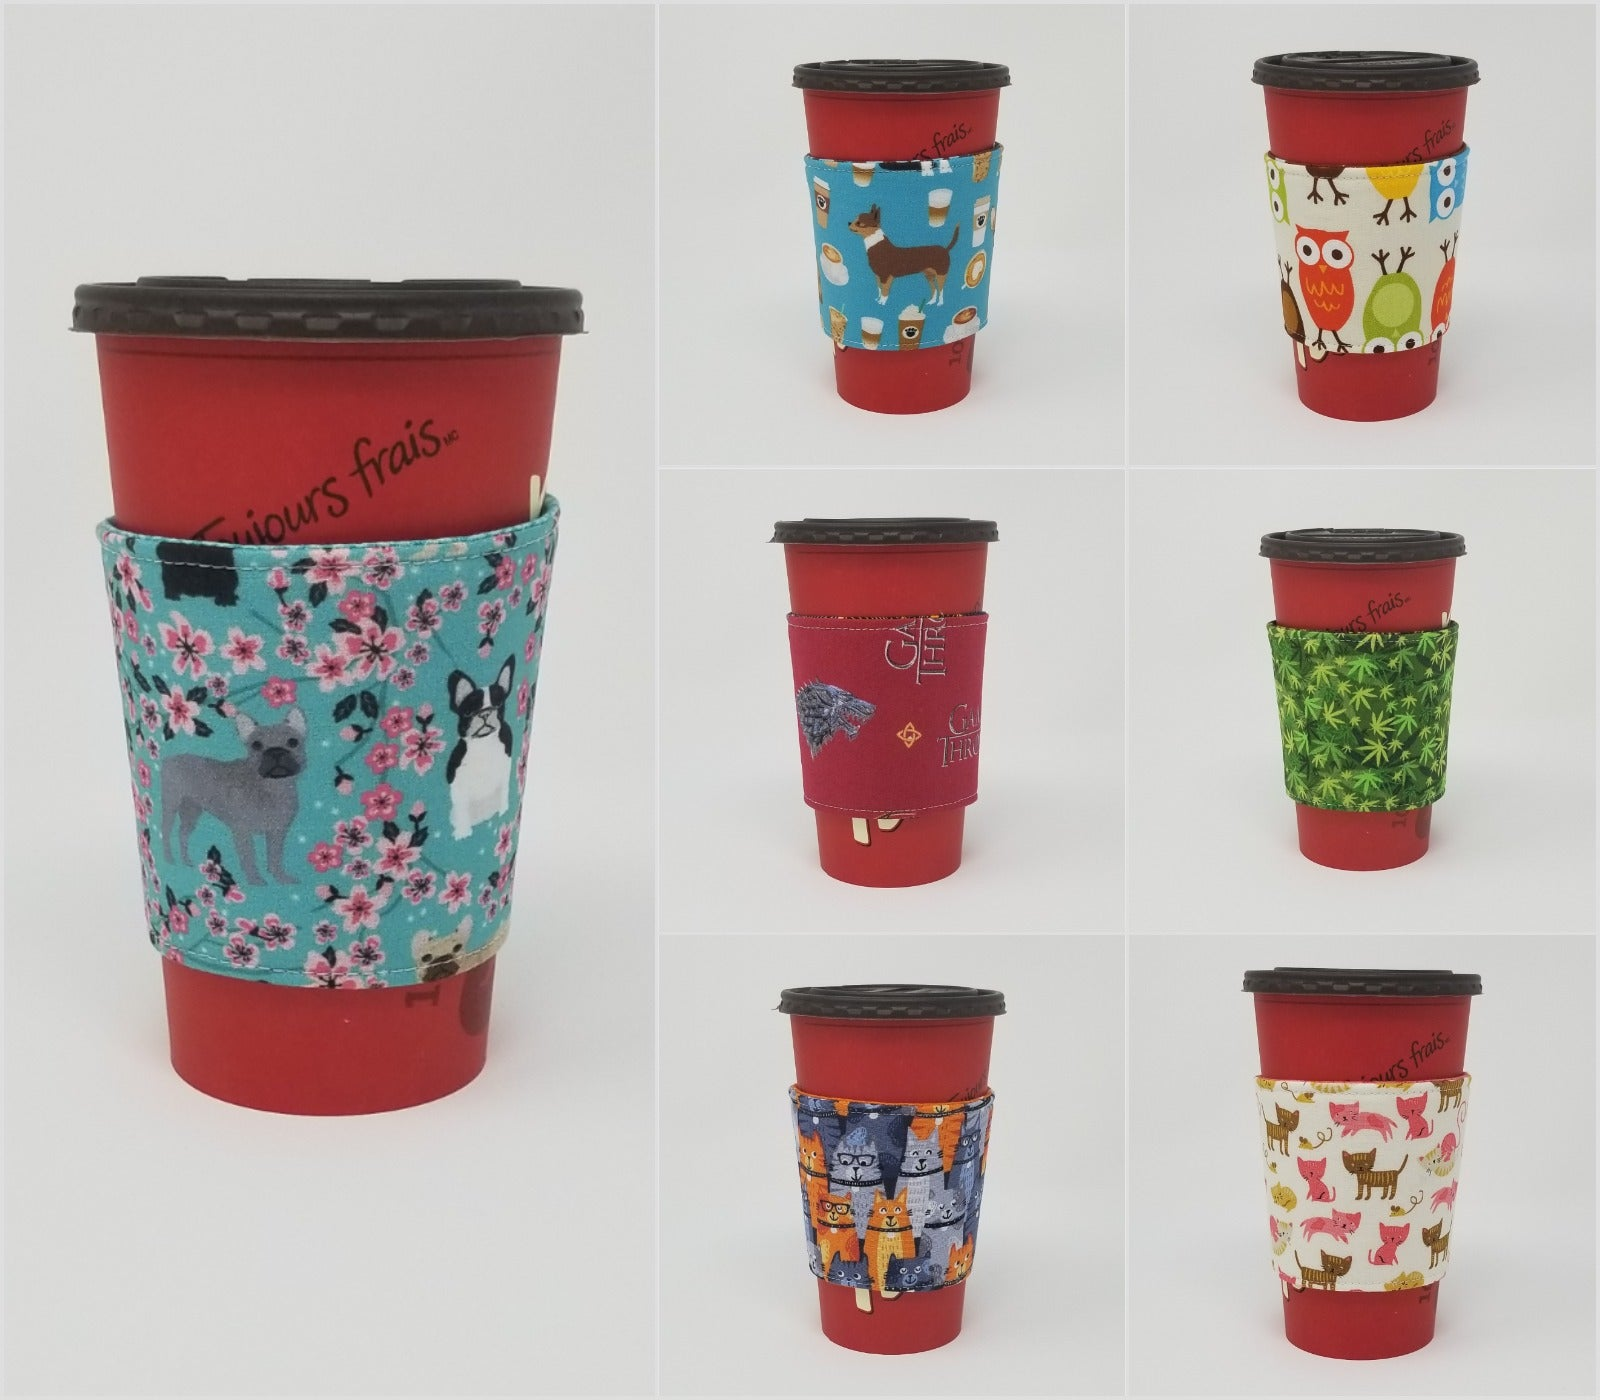 February 2019 New Reusable Cup Cozy styles